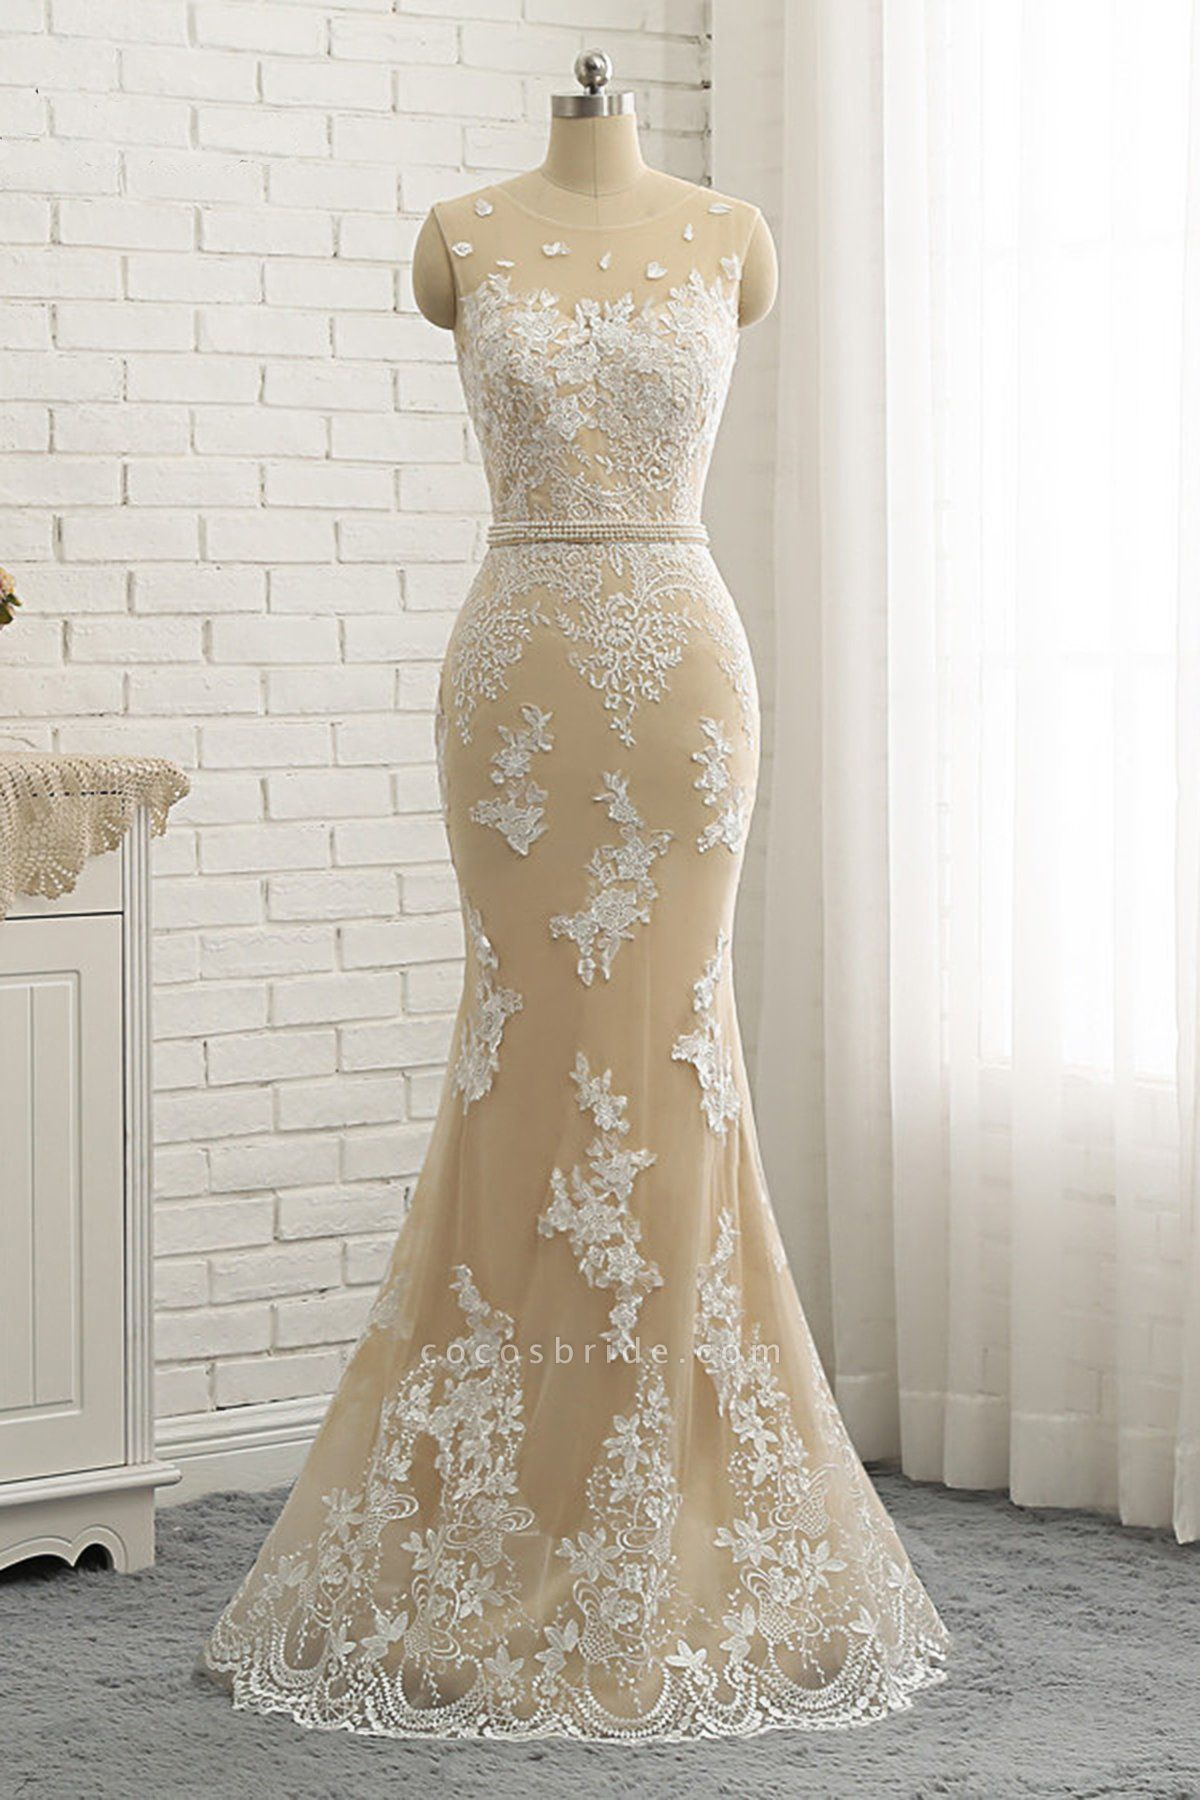 Nude Tulle Round Neck Lace Long Mermaid Pearl Prom Dress